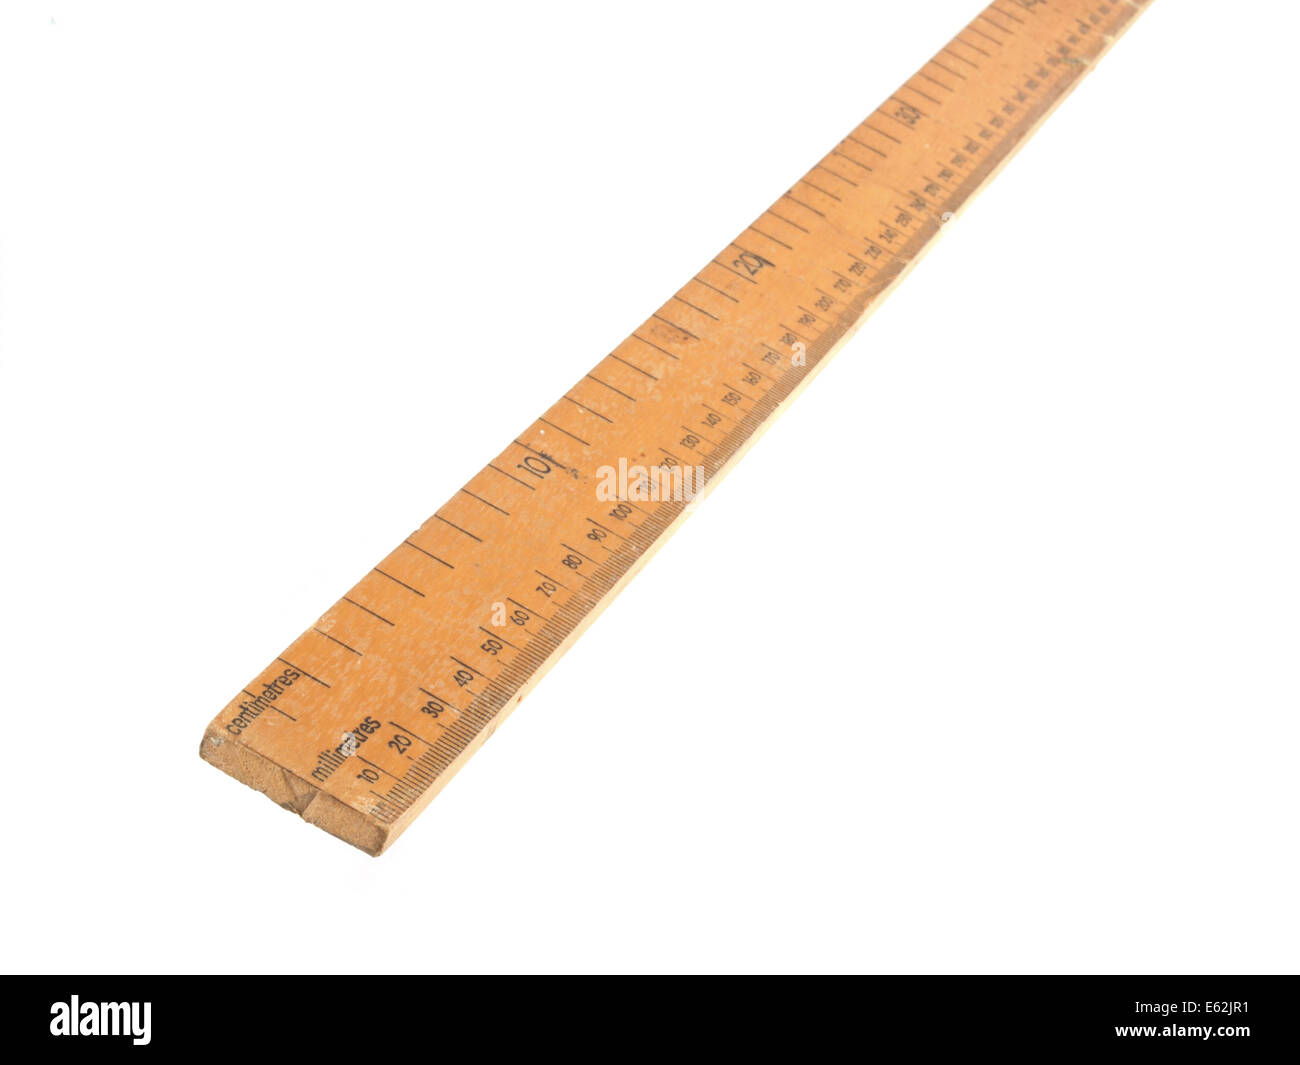 Close up photo of a wooden metric ruler on a white background - Stock Image